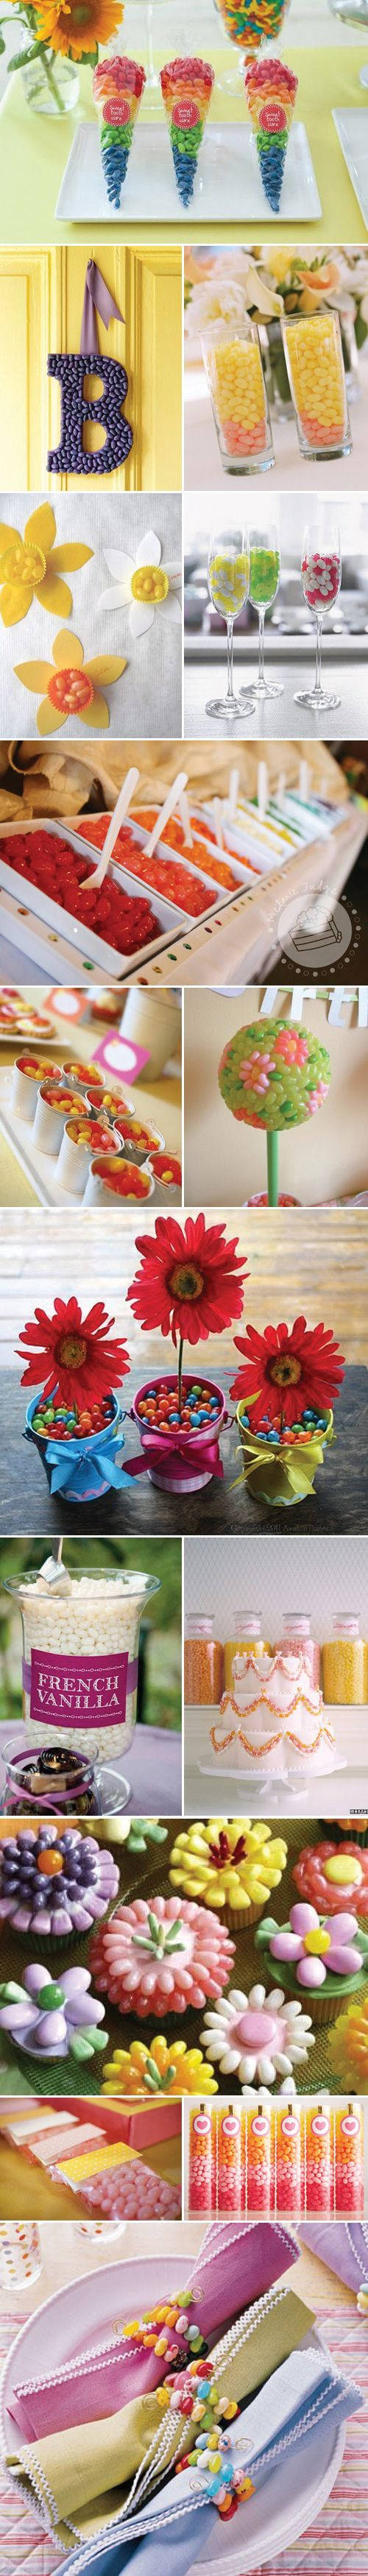 Peachy Keen Jellybean: all the cute and creative ways to use jellybeans at parties and events – as decor, as favors and of course, as treats for the guests!